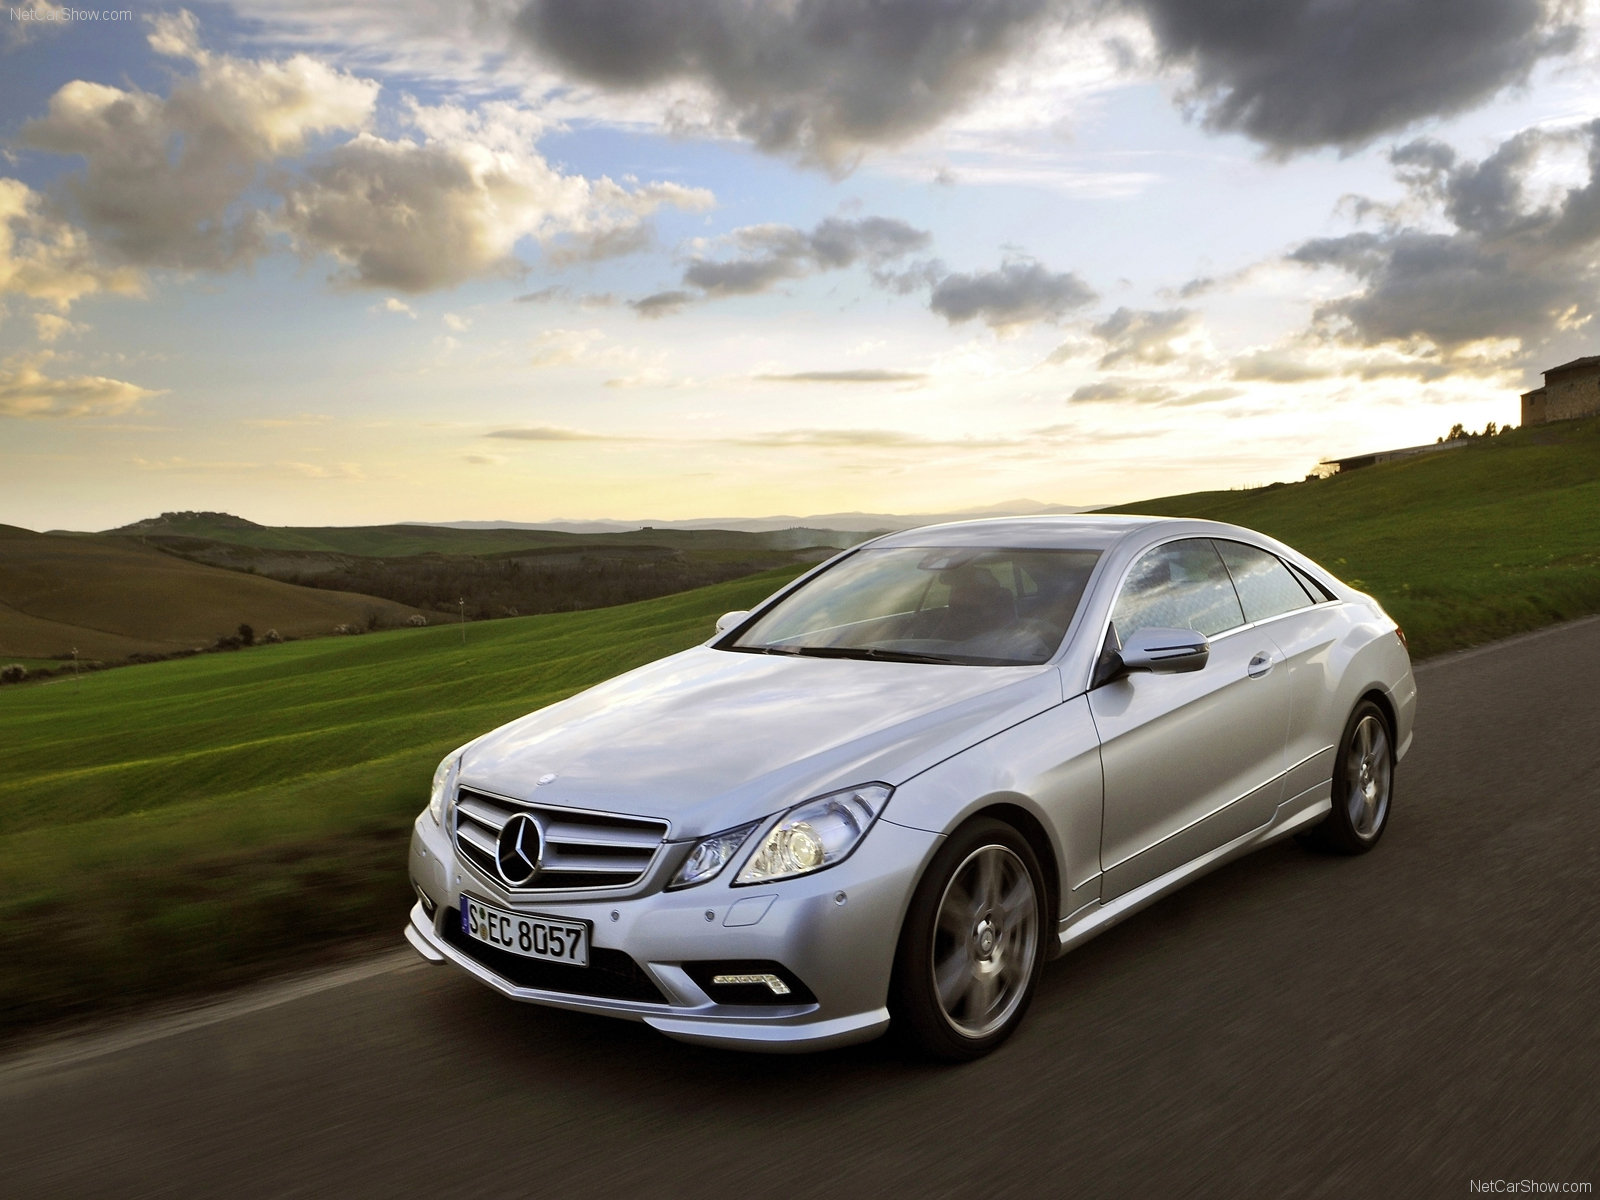 Mercedes-Benz E-Class Coupe photo 64020